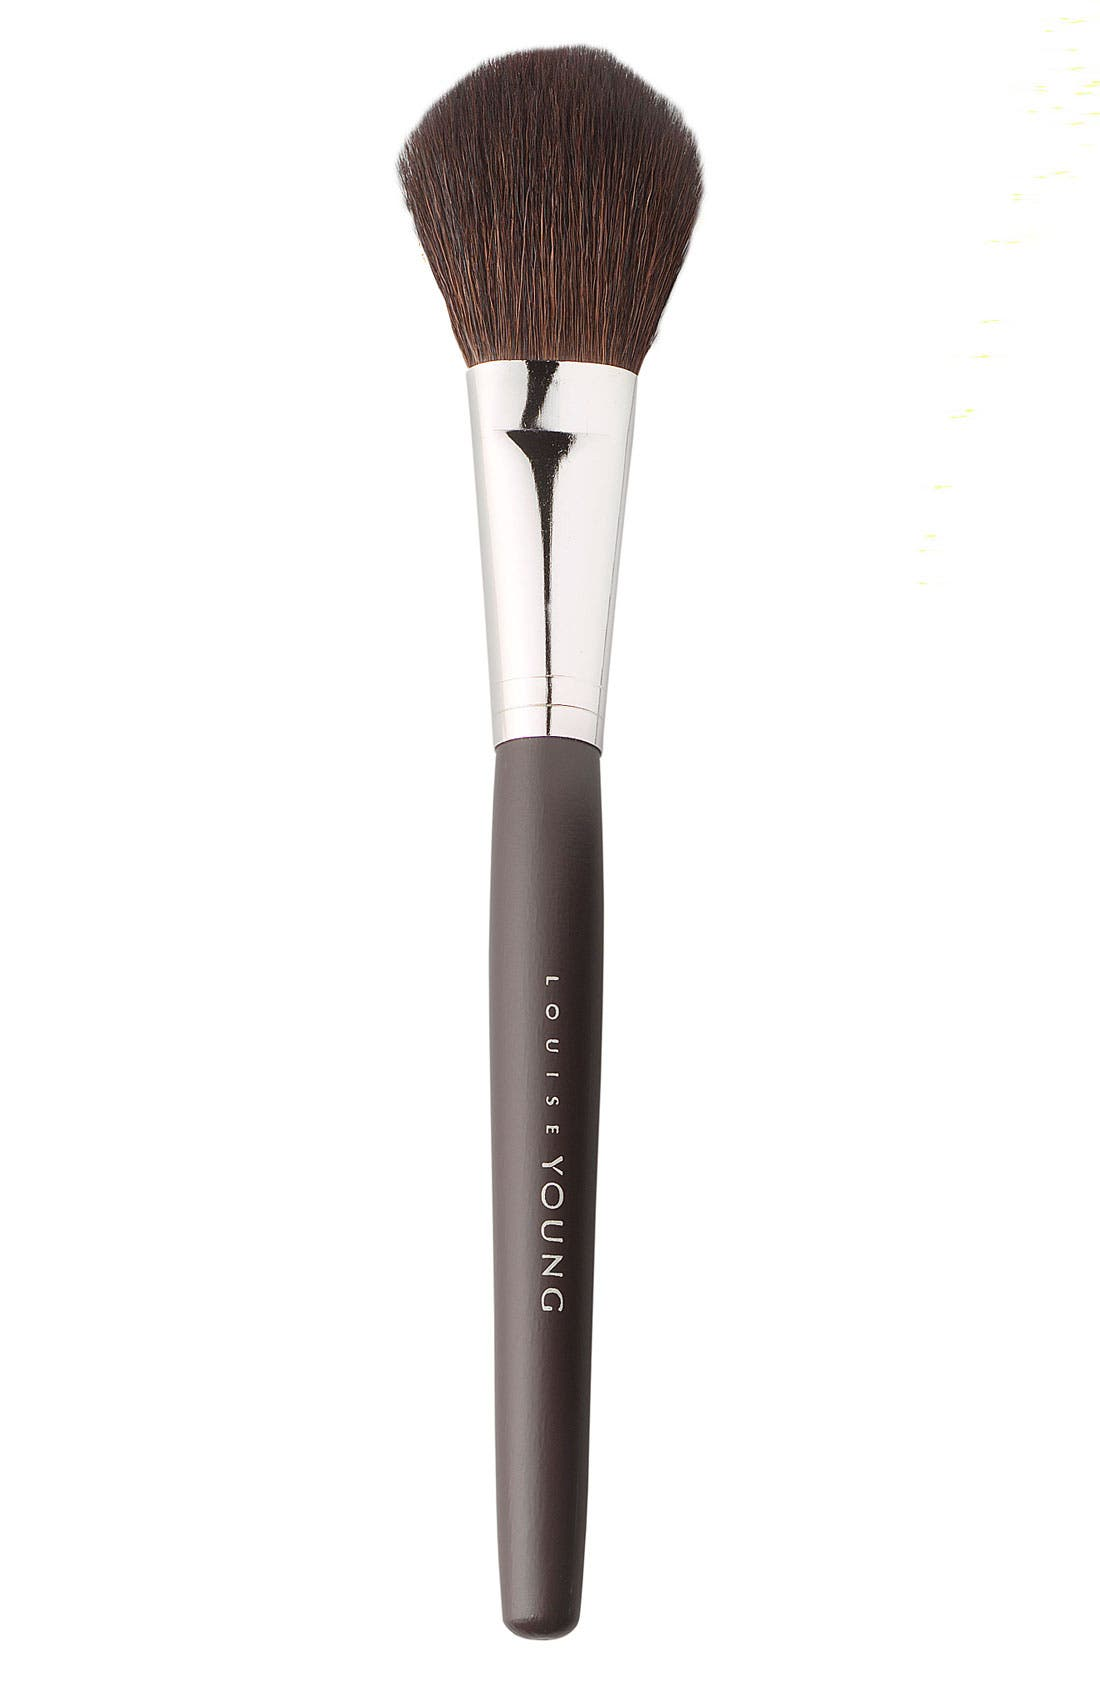 Louise Young Cosmetics LY04 Powder/Blusher Brush